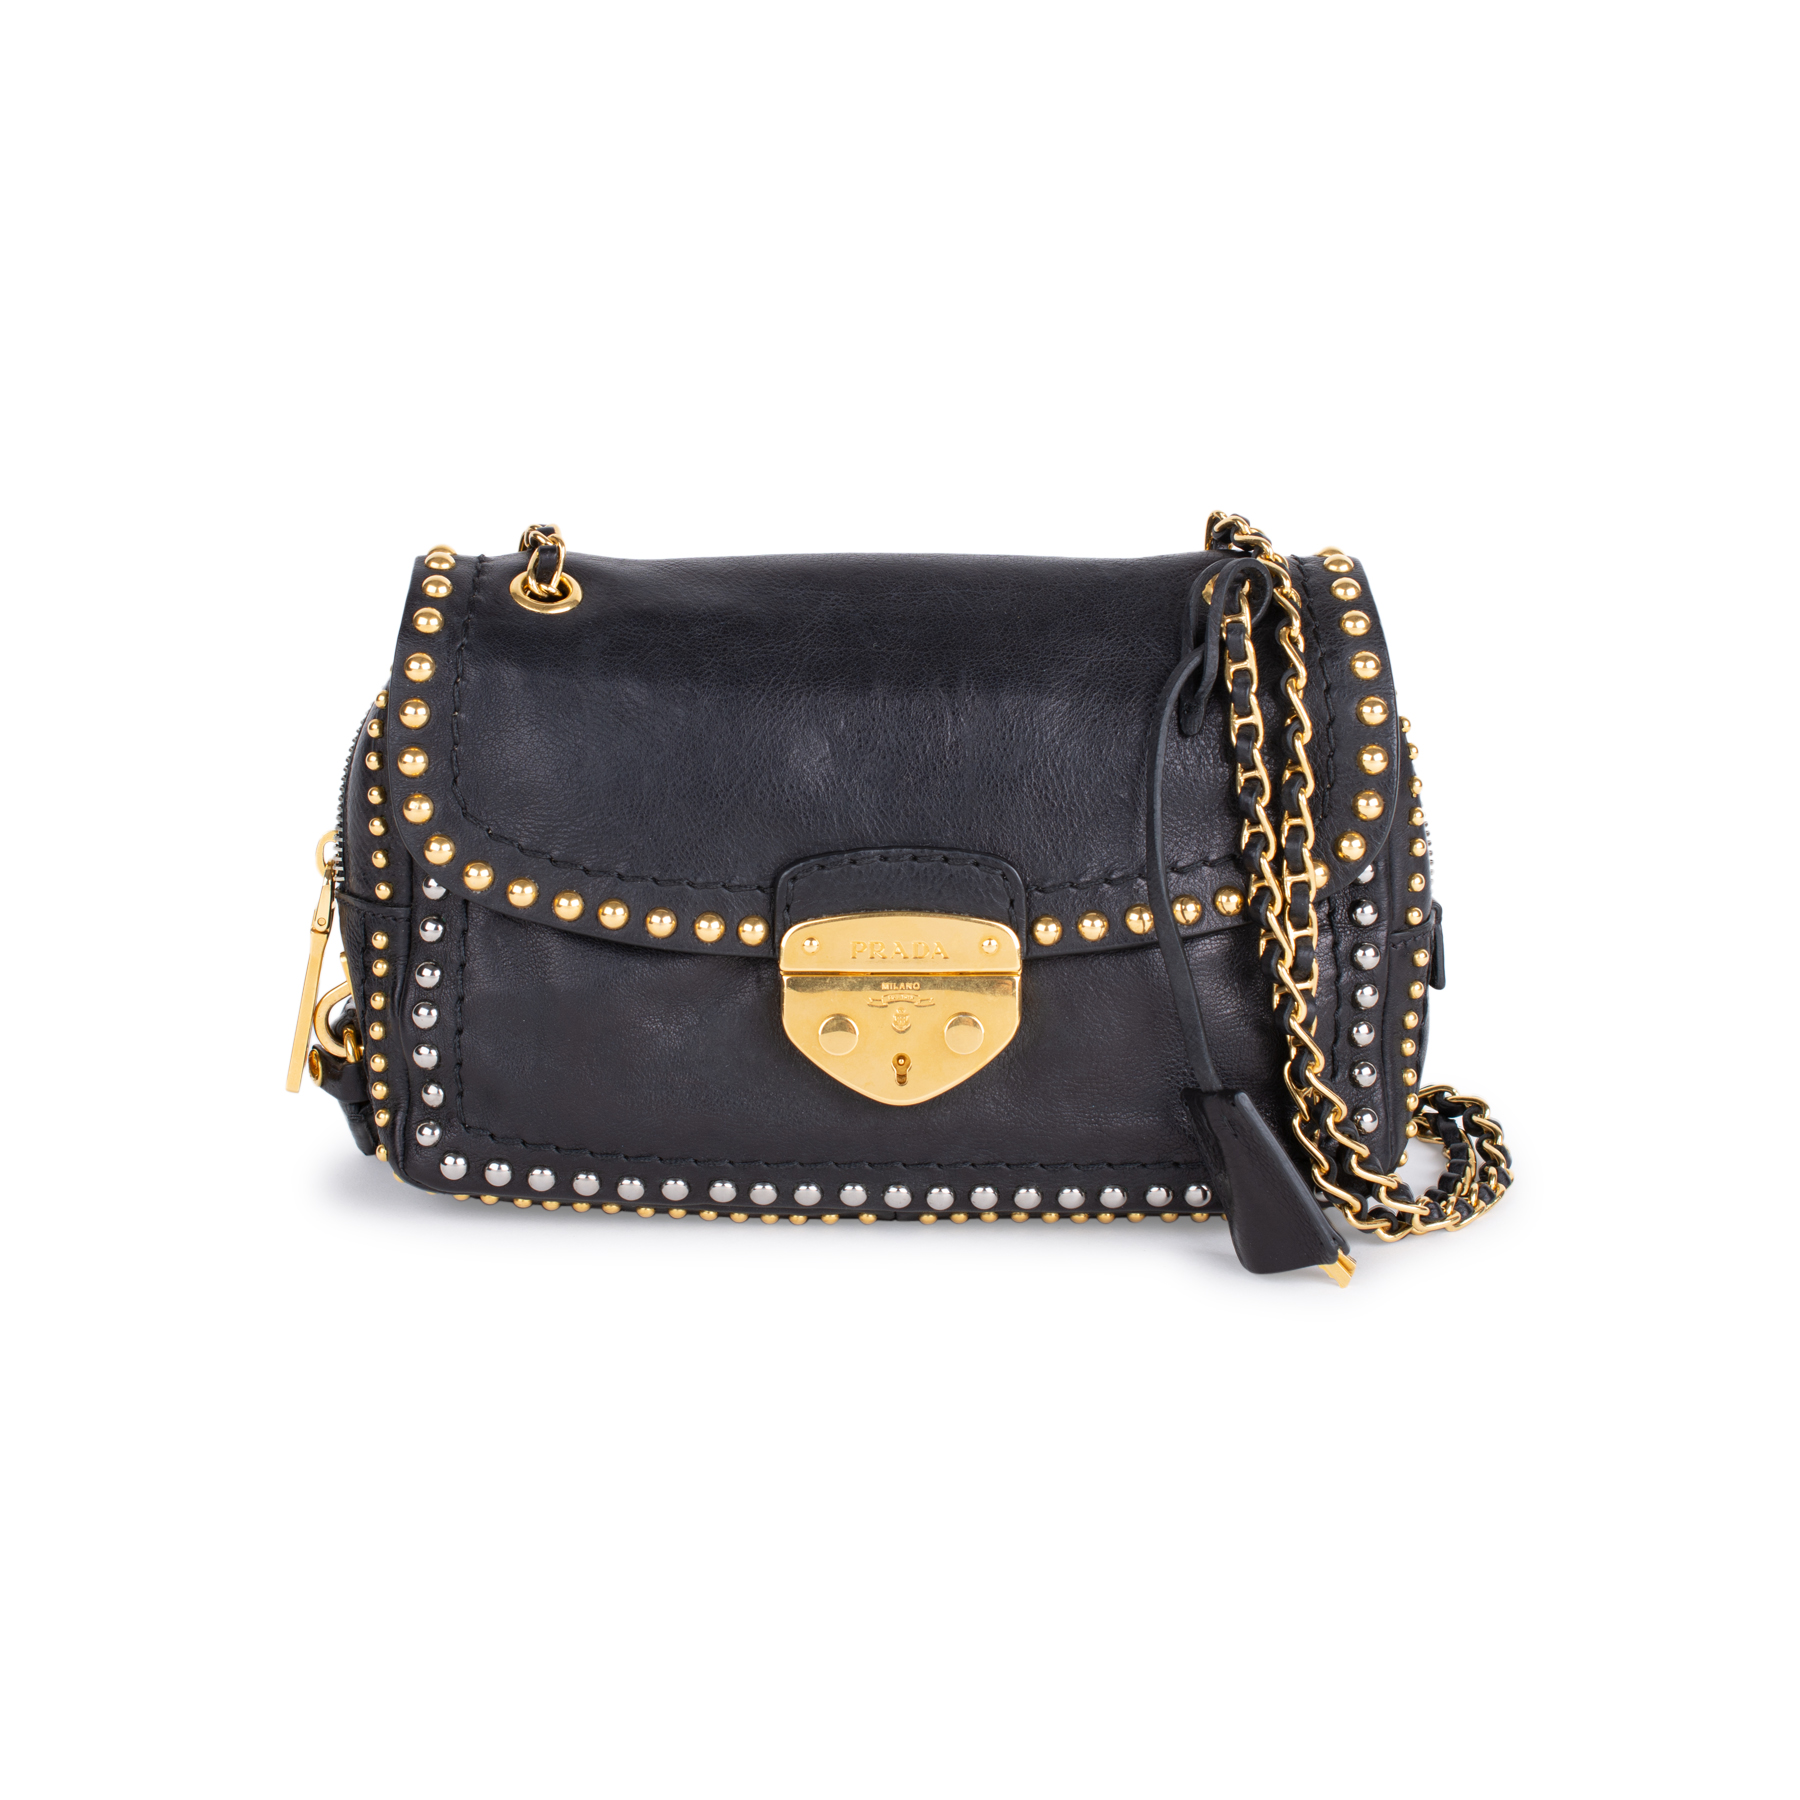 af4855a2c51d Authentic Second Hand Prada Studded Push-lock Crossbody Bag (PSS-333-00021)  | THE FIFTH COLLECTION